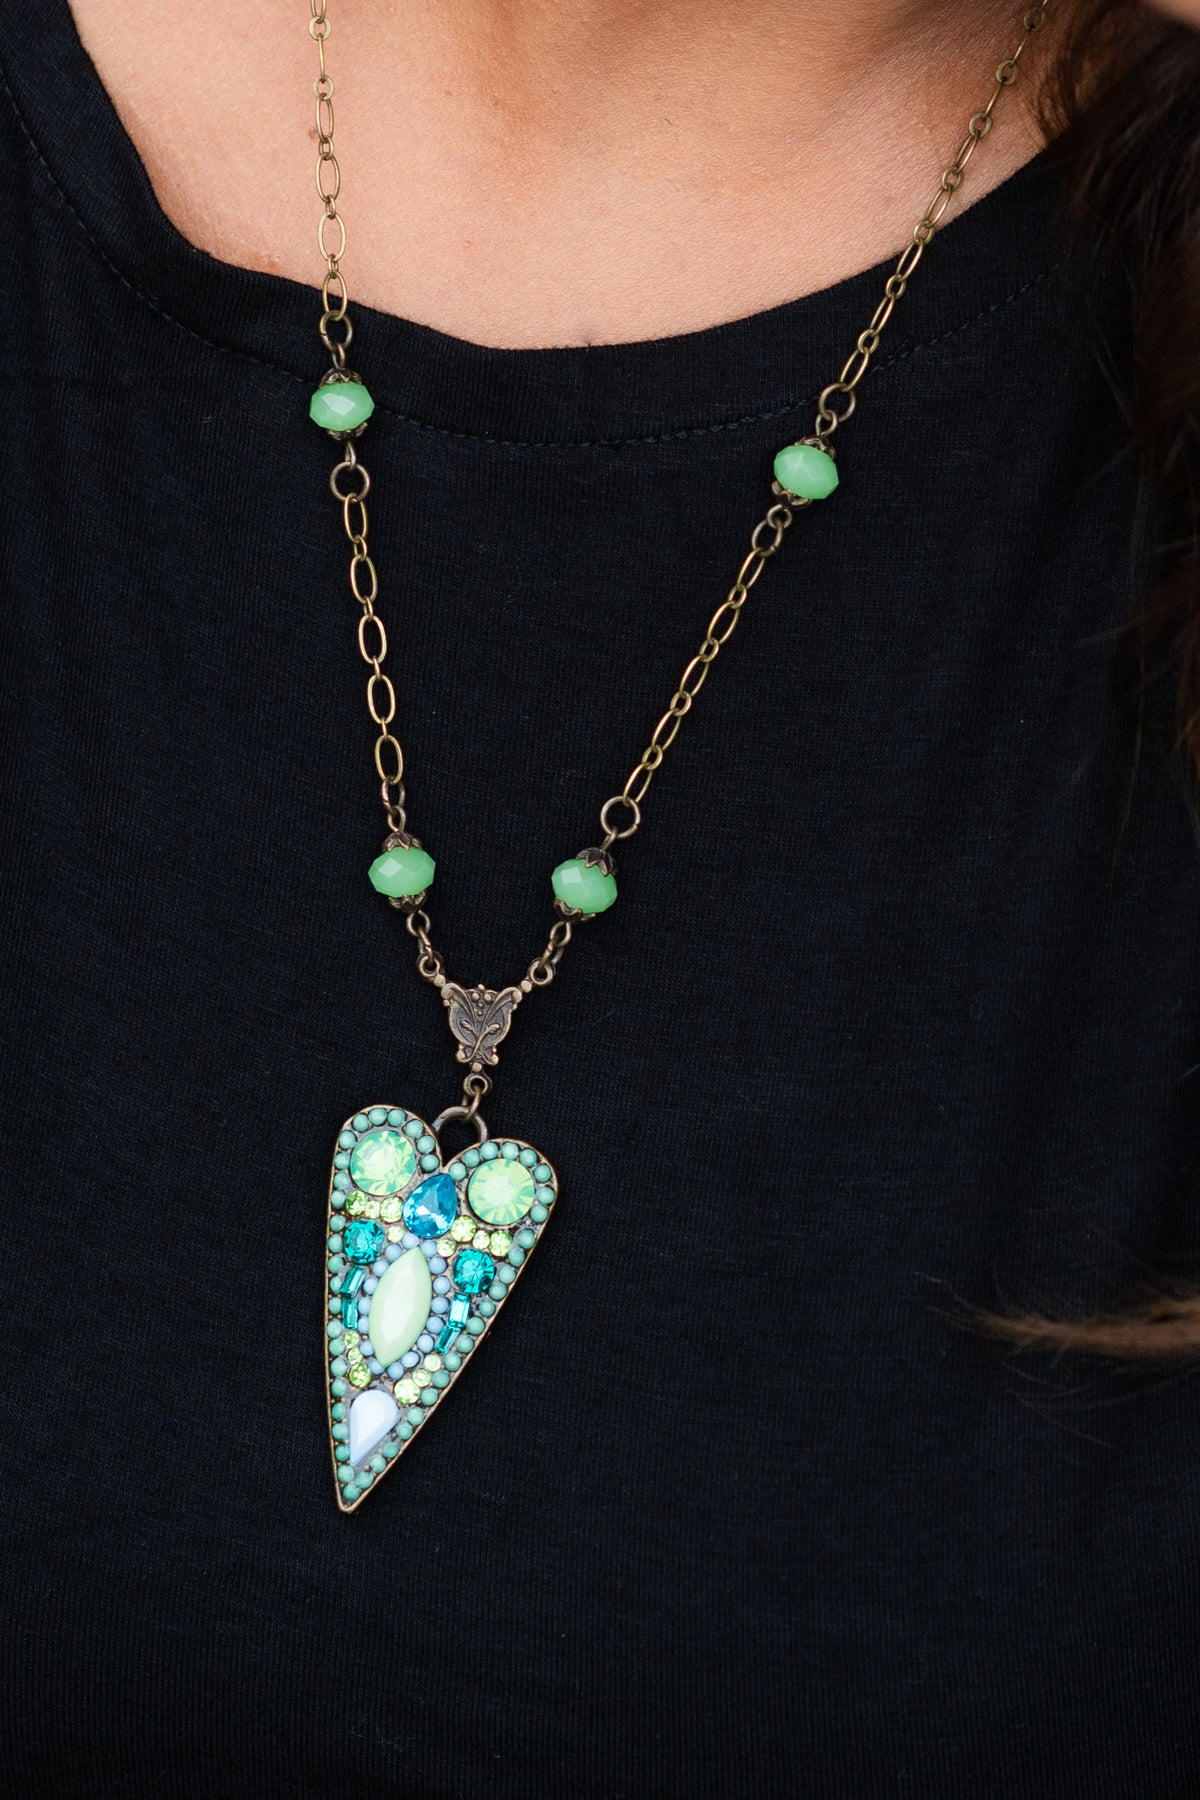 Jeweled Arrow Necklace